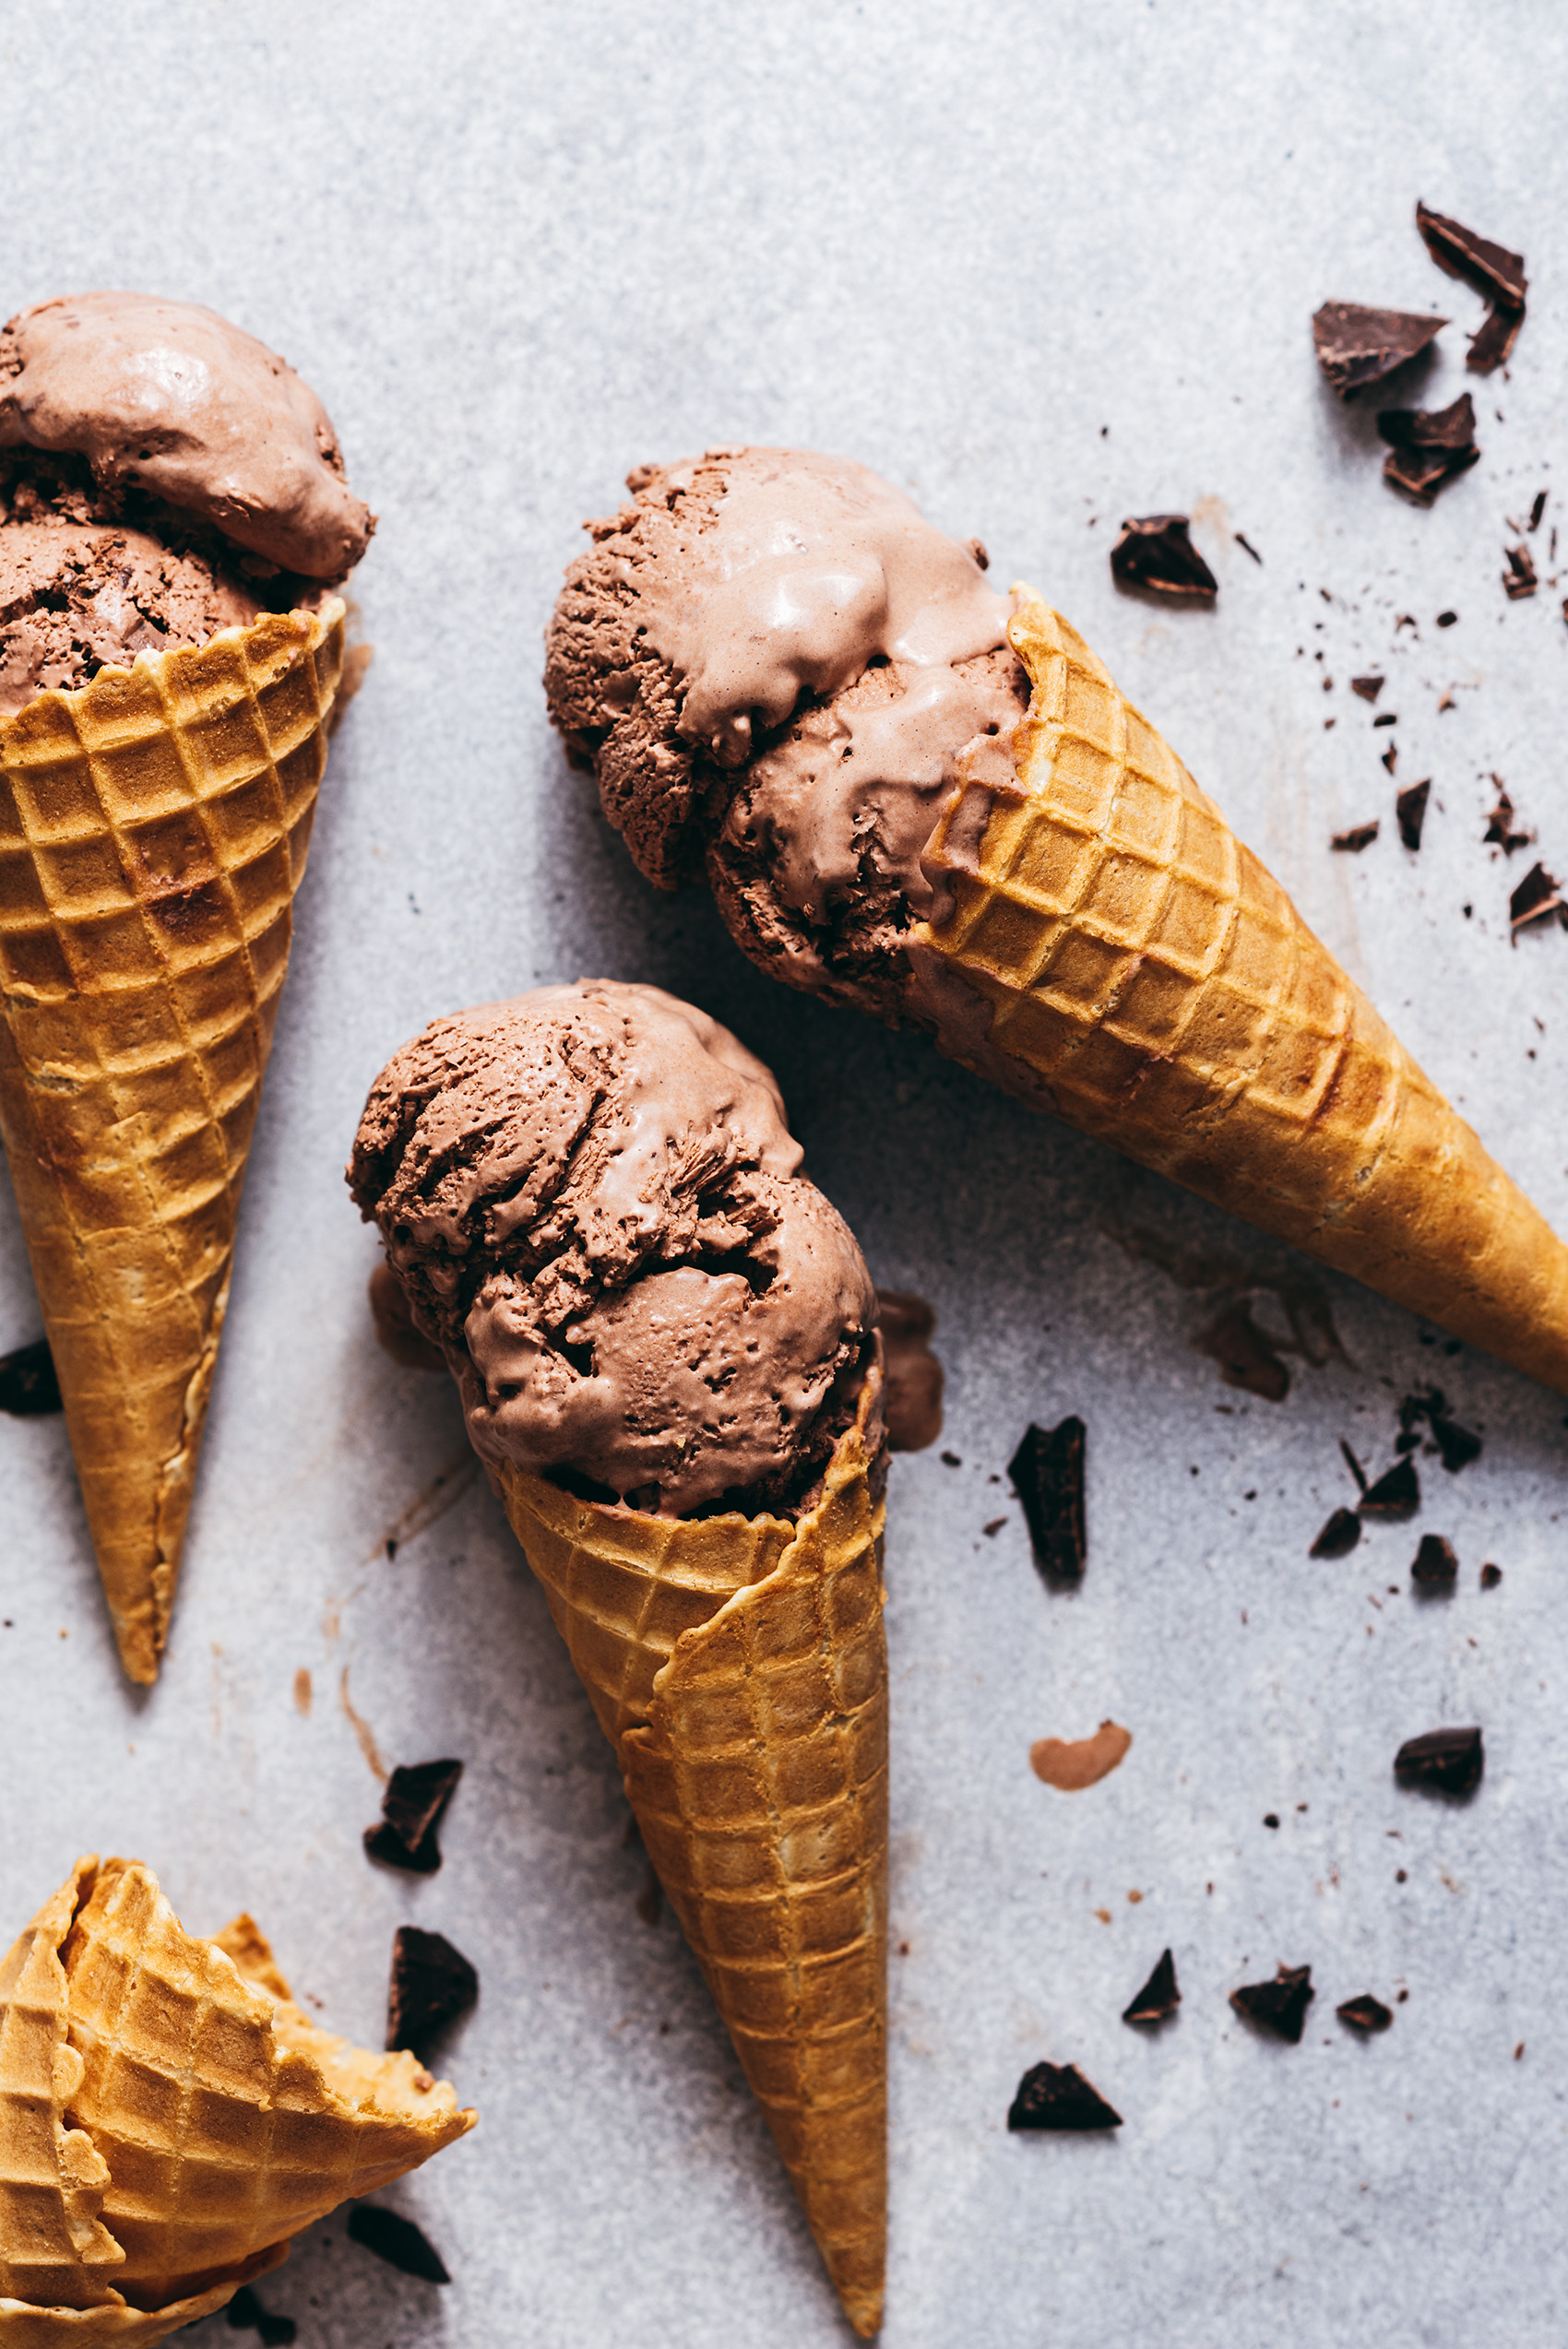 Chocolate ice cream without ice cream maker - Lilie Bakery